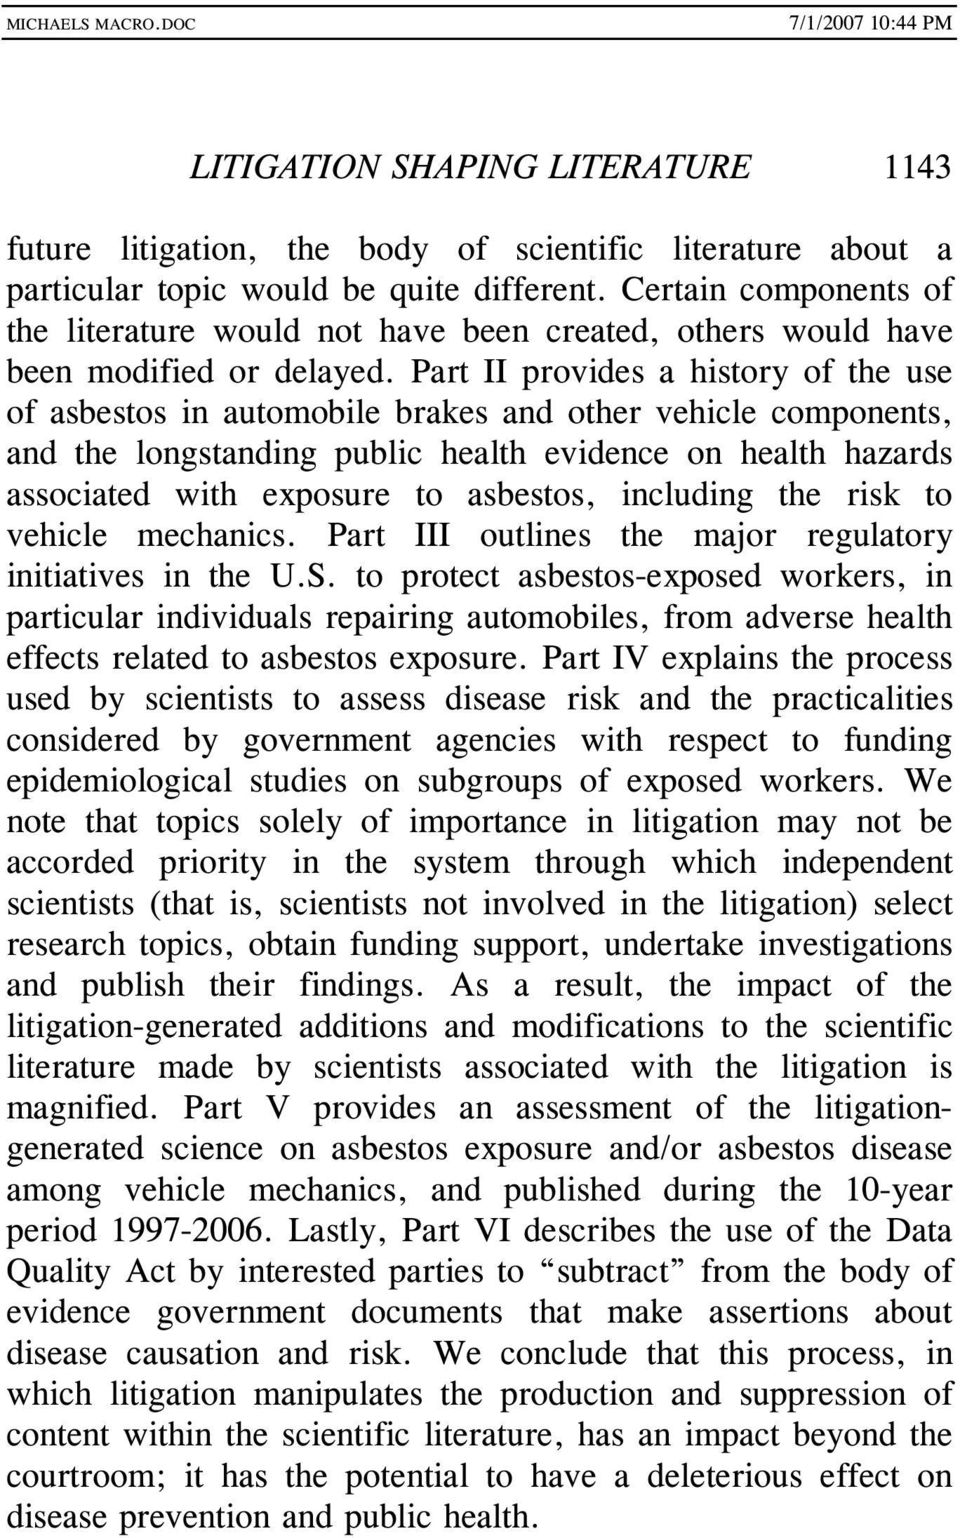 Part II provides a history of the use of asbestos in automobile brakes and other vehicle components, and the longstanding public health evidence on health hazards associated with exposure to